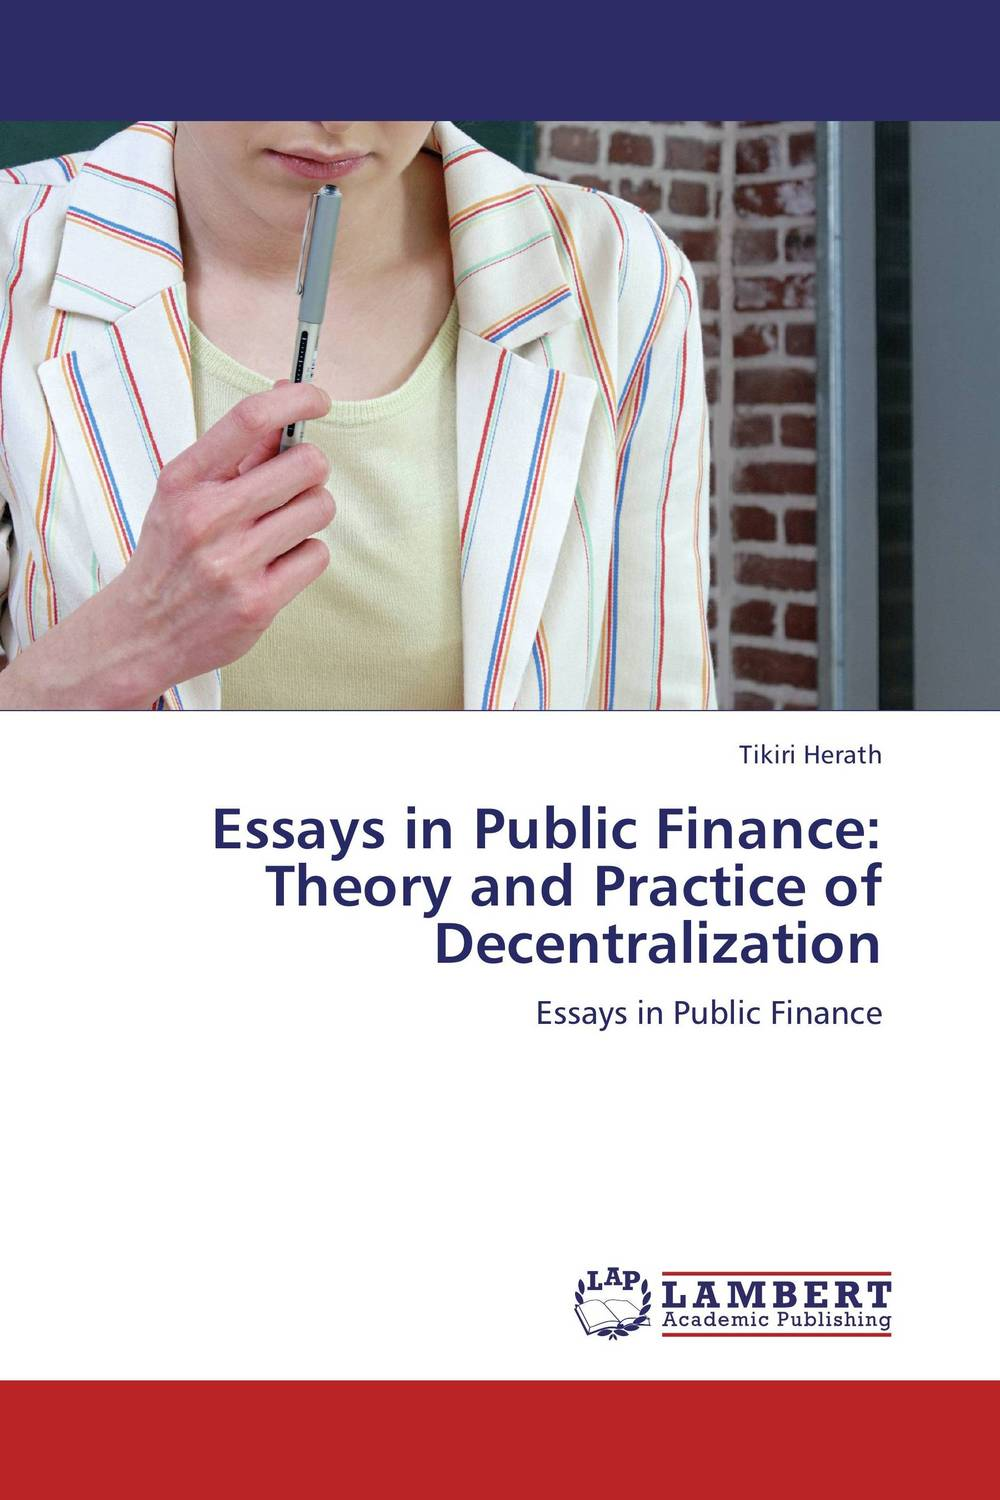 Essays in Public Finance: Theory and Practice of Decentralization edward bodmer corporate and project finance modeling theory and practice